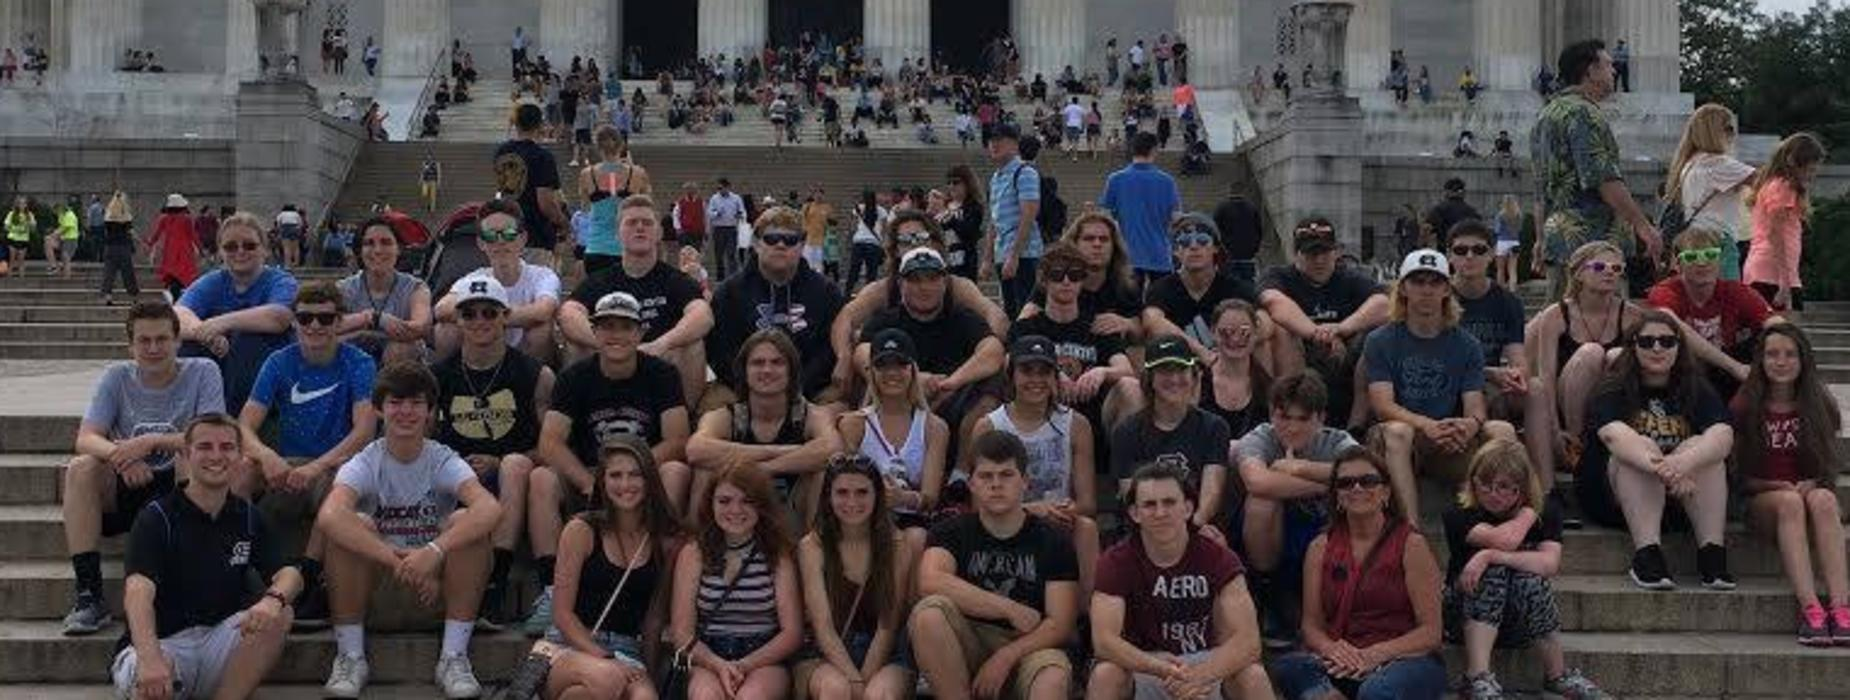 2018 Senior Class Trip to Washington DC on the steps of the Capital